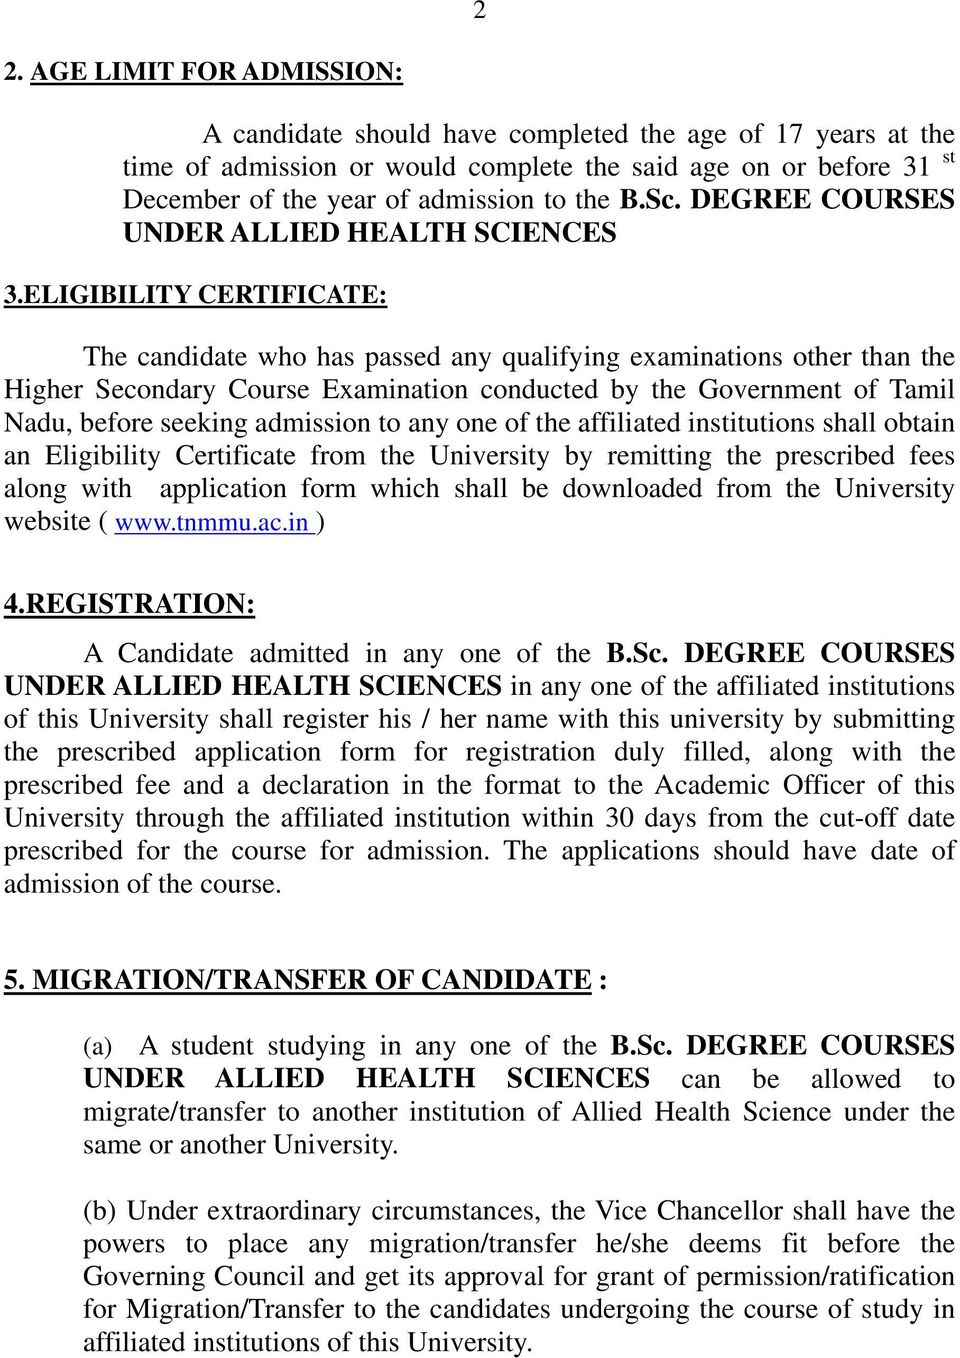 ELIGIBILITY CERTIFICATE: The candidate who has passed any qualifying examinations other than the Higher Secondary Course Examination conducted by the Government of Tamil Nadu, before seeking